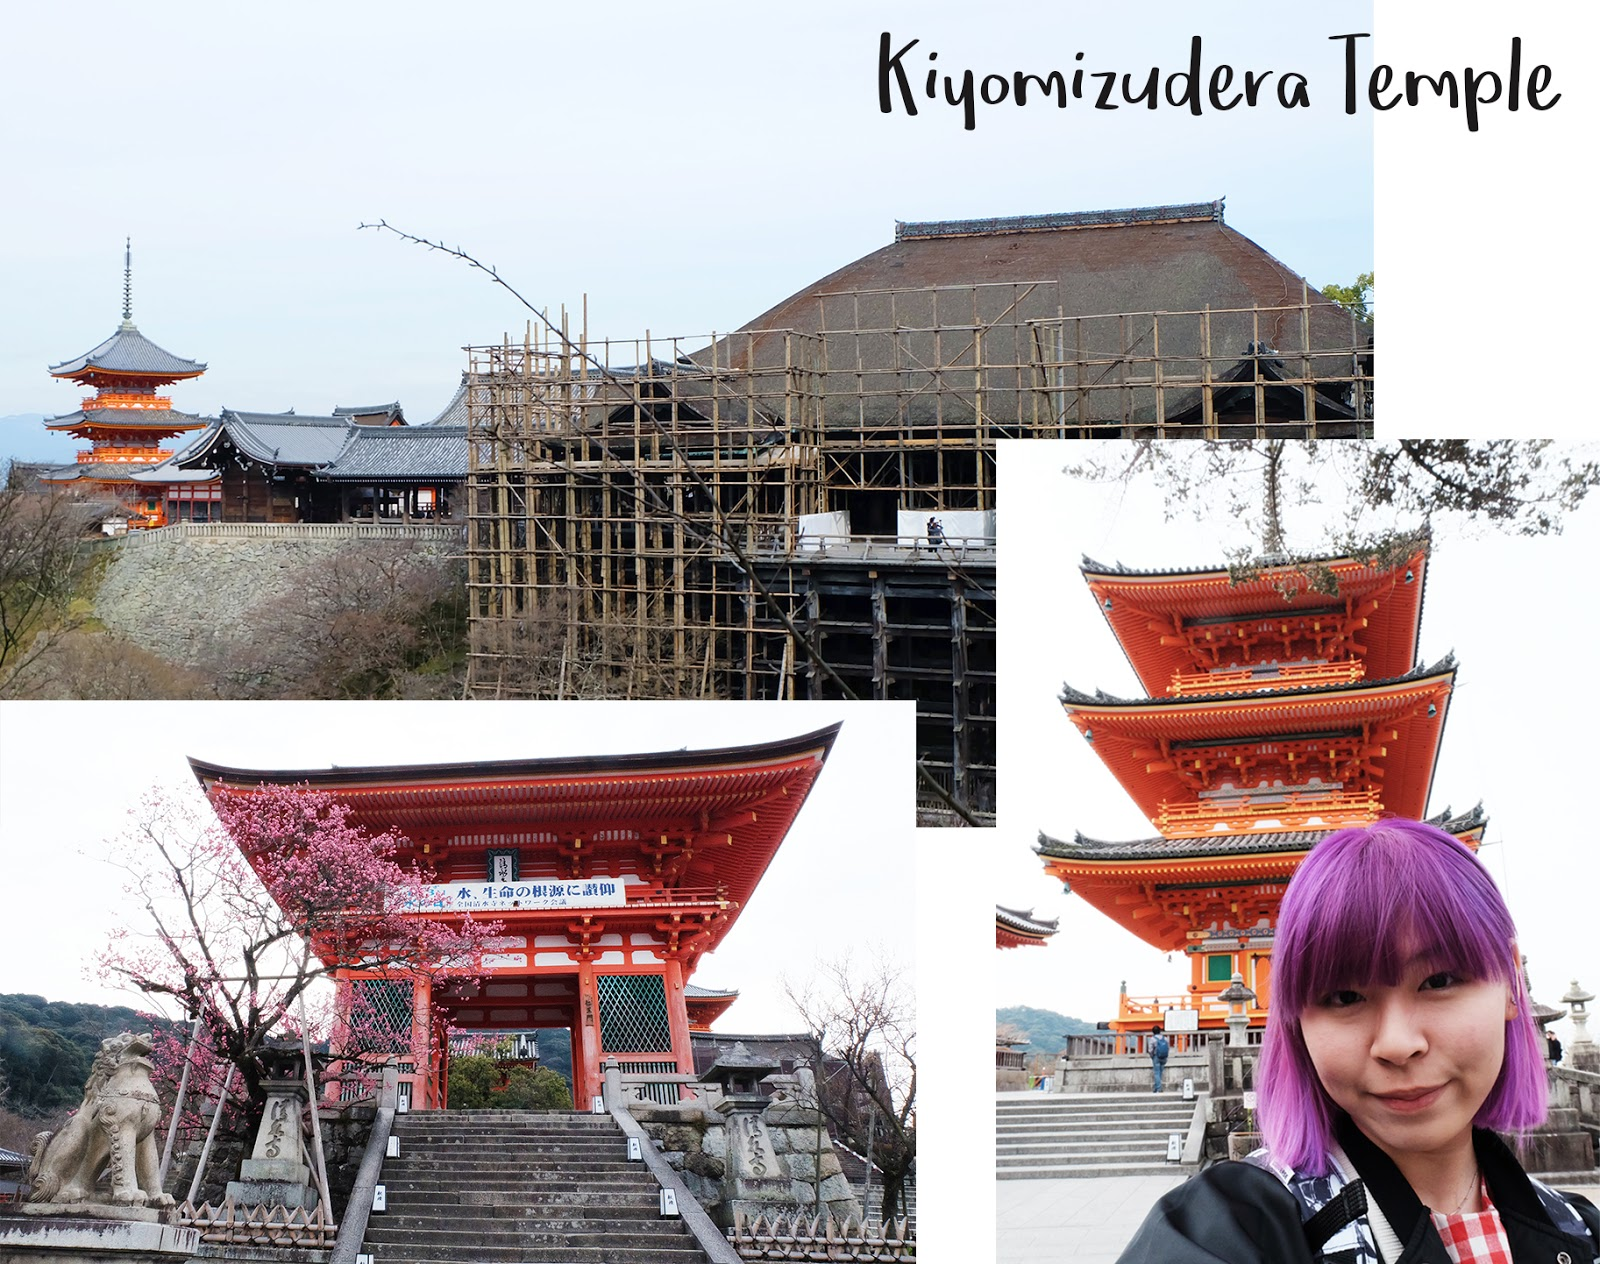 One Day 6 places Kyoto Kiyomizudera | www.bigdreamerblog.com